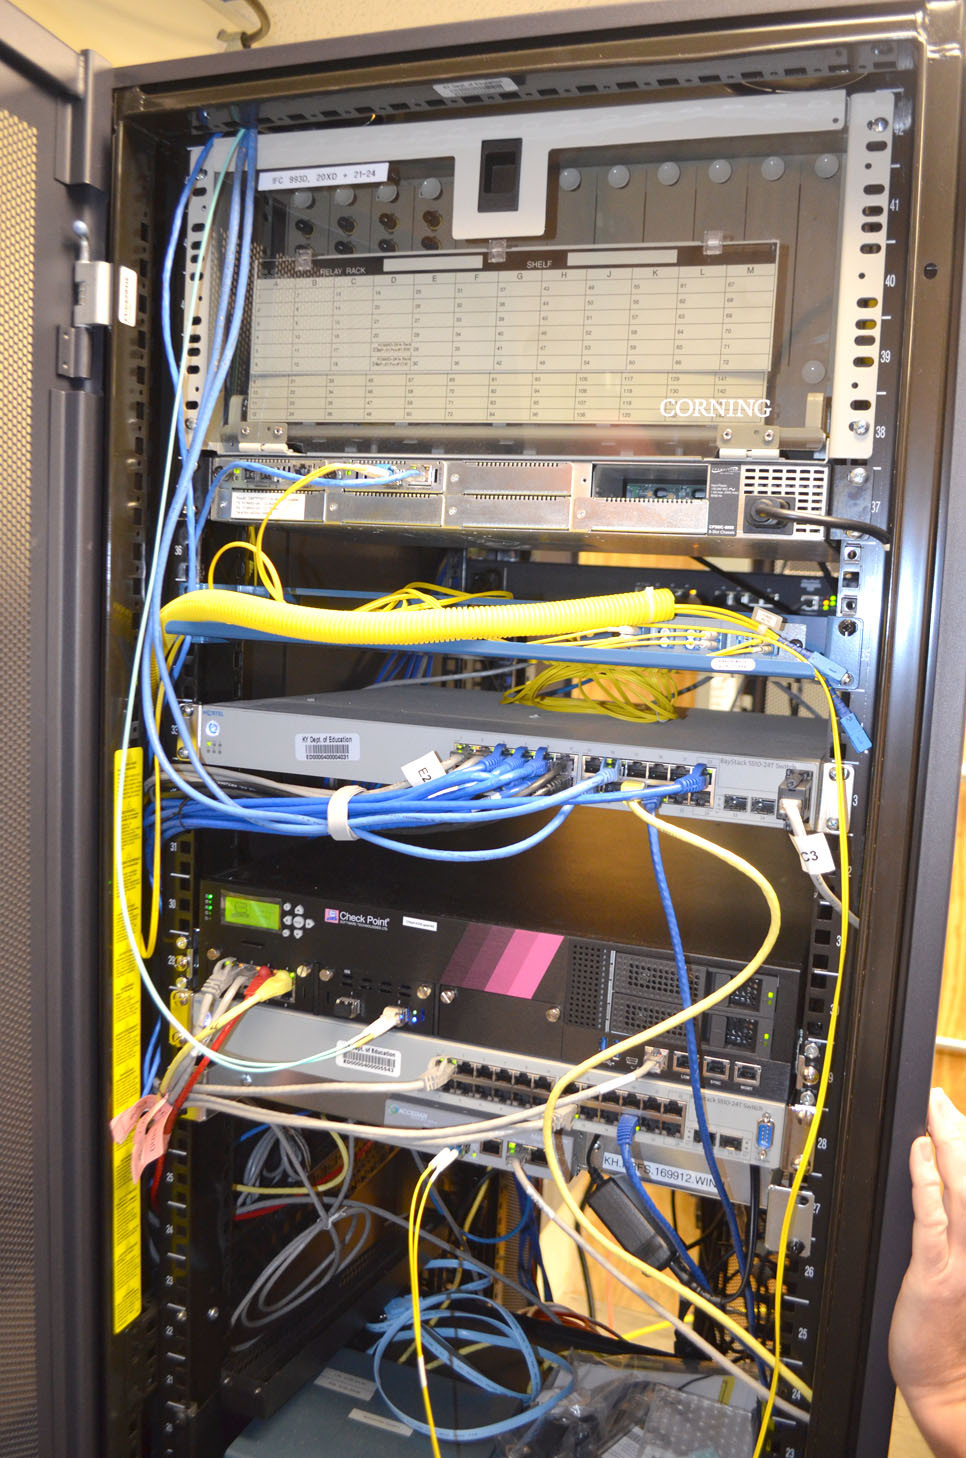 INTERNET SERVICE to Woodford County Public Schools comes to its central office and then gets distributed to the school buildings via a fiber optic network. The state provides every public school district with Internet access at no charge, but it's up to each district to connect its buildings. (Photo by Bob Vlach)